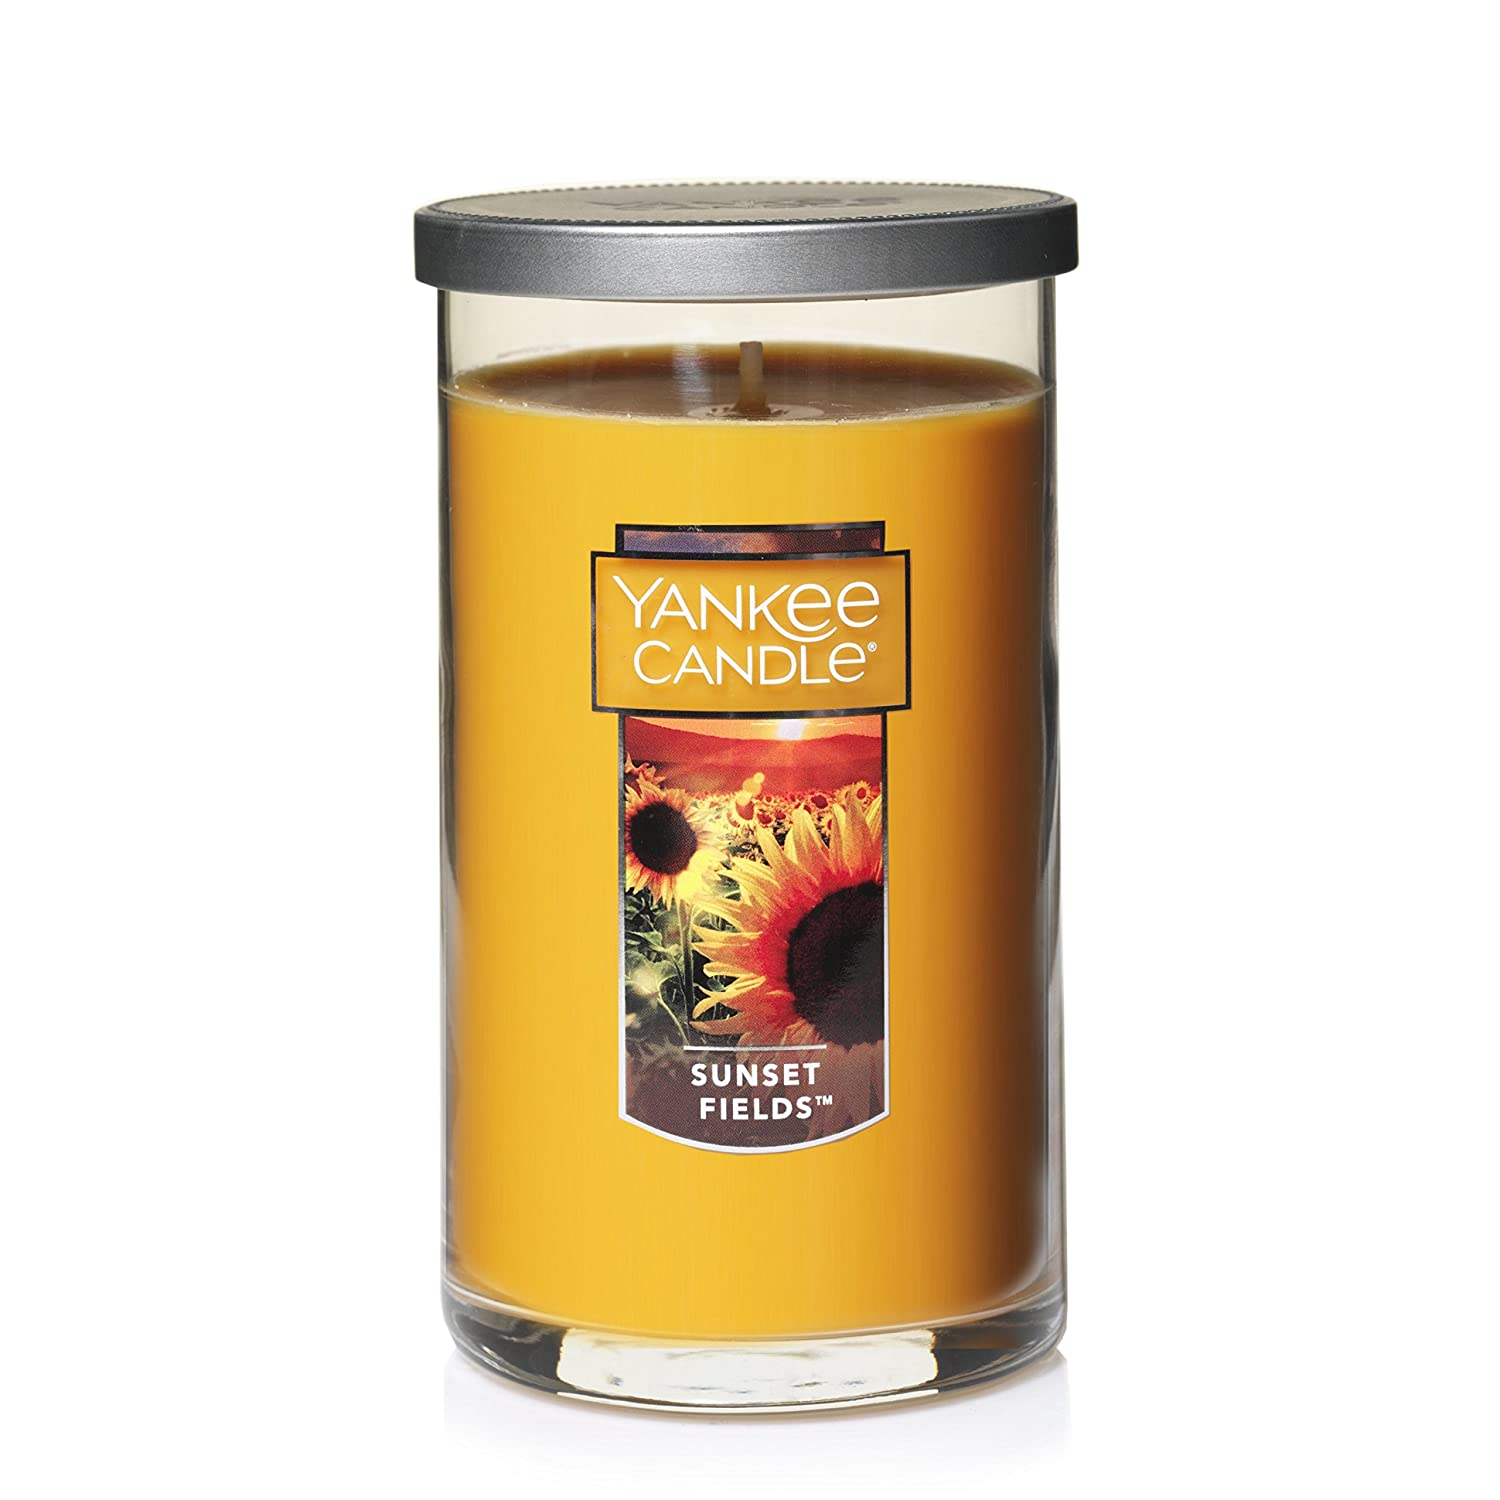 Yankee Candle Medium 2-Wick Tumbler Candle Home Sweet Home